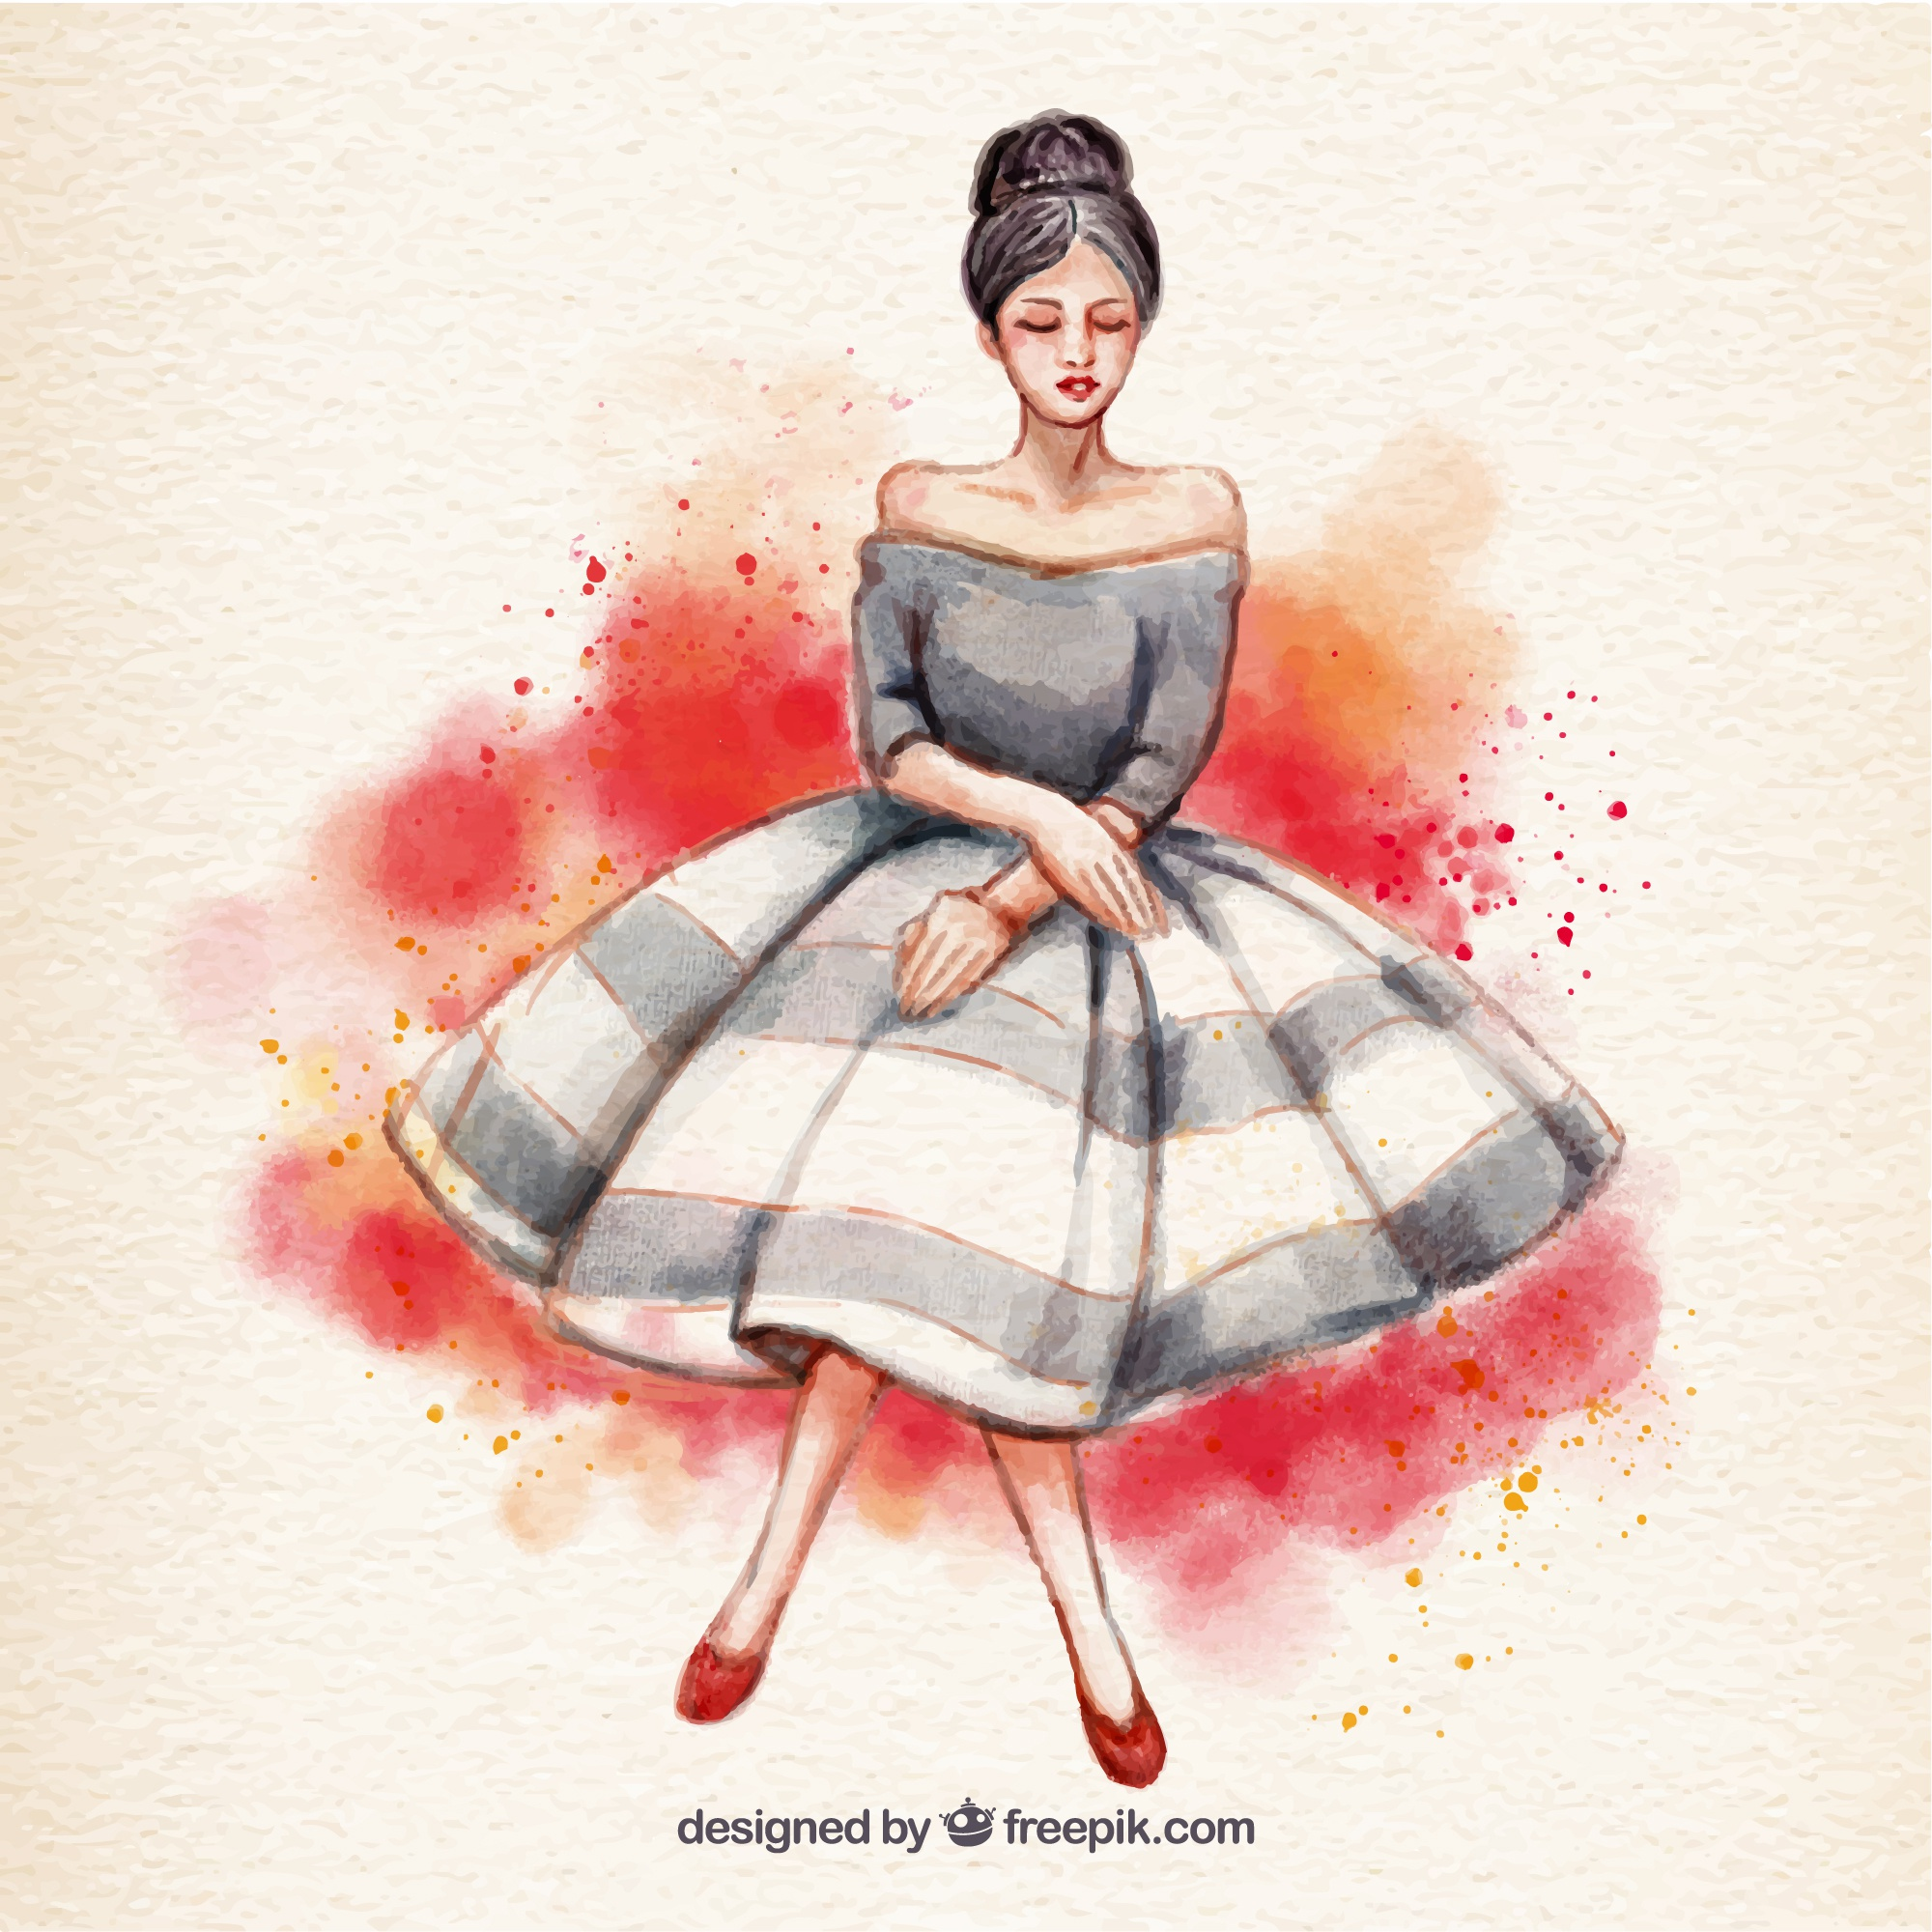 Watercolor Woman with Dress